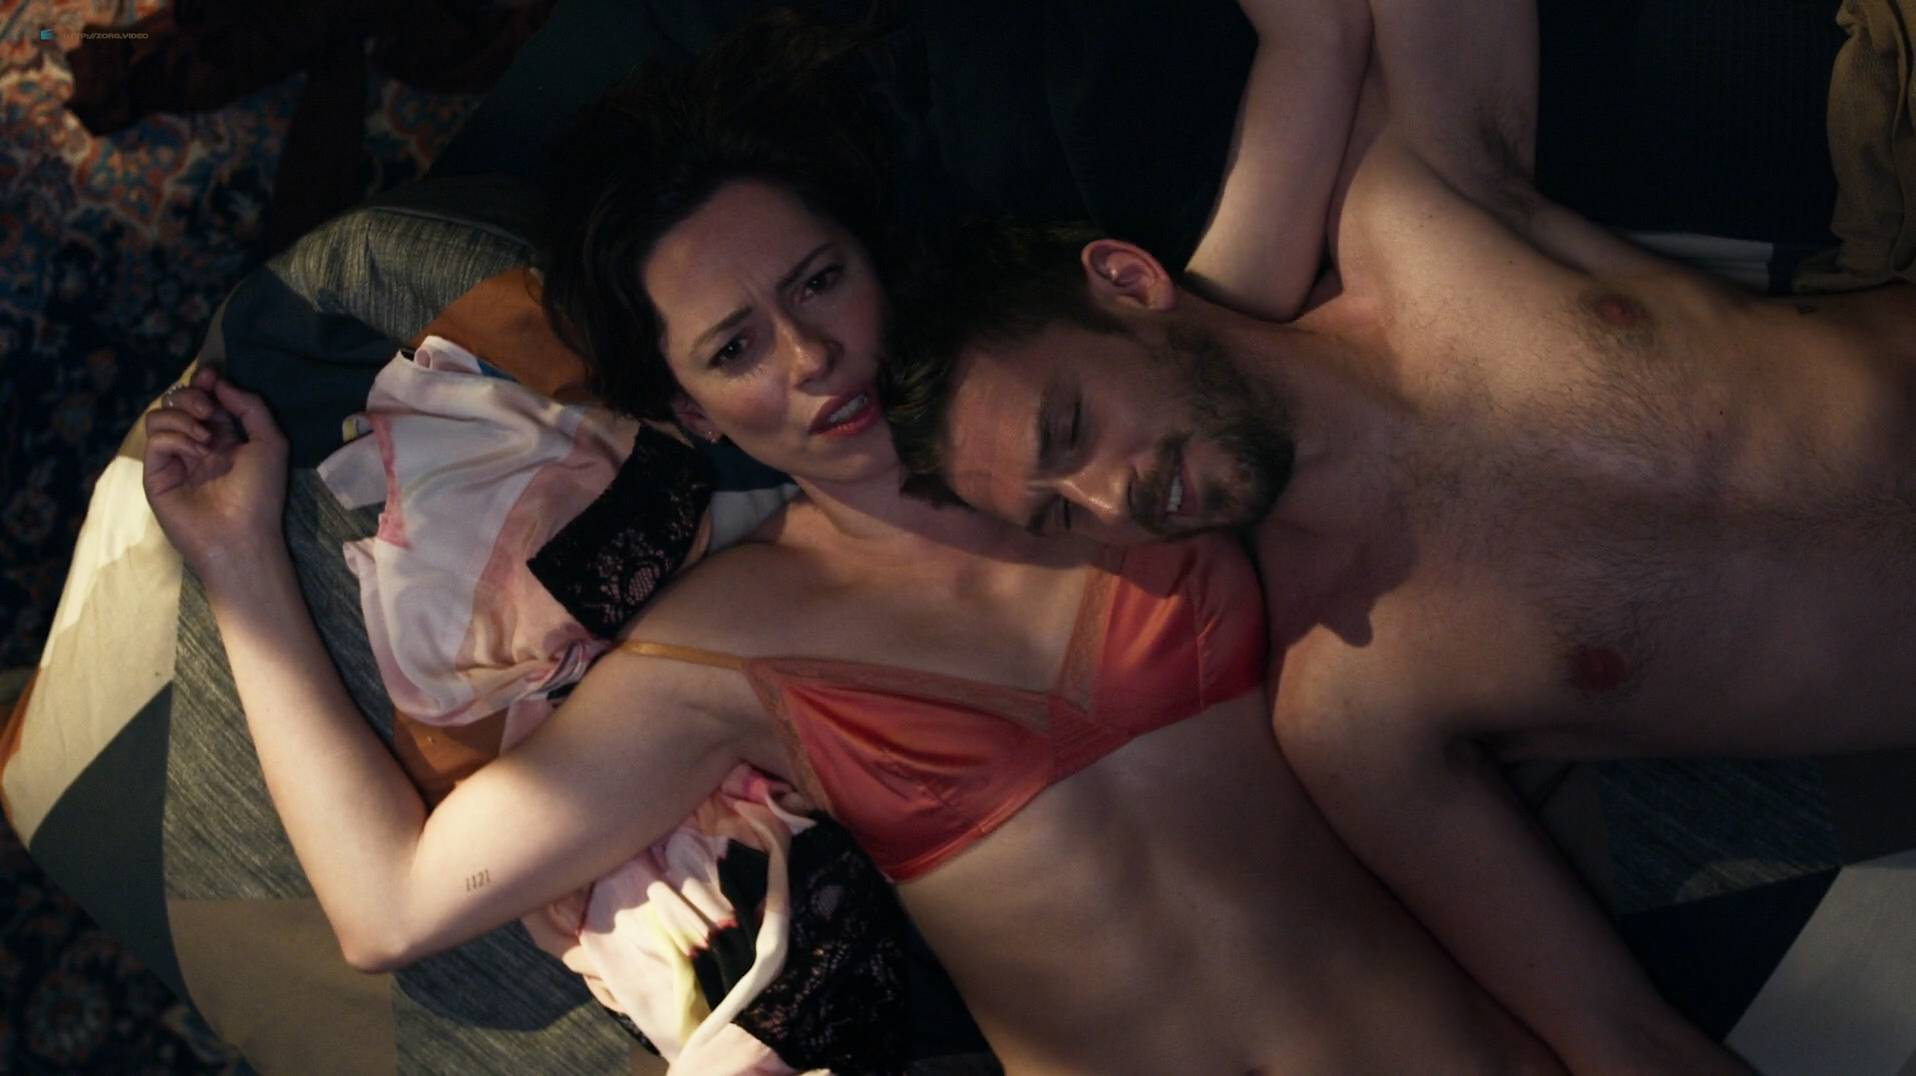 Jacqueline Obradors Sex Scene Top rebecca hall nude brief topless some sex and very hot - permission